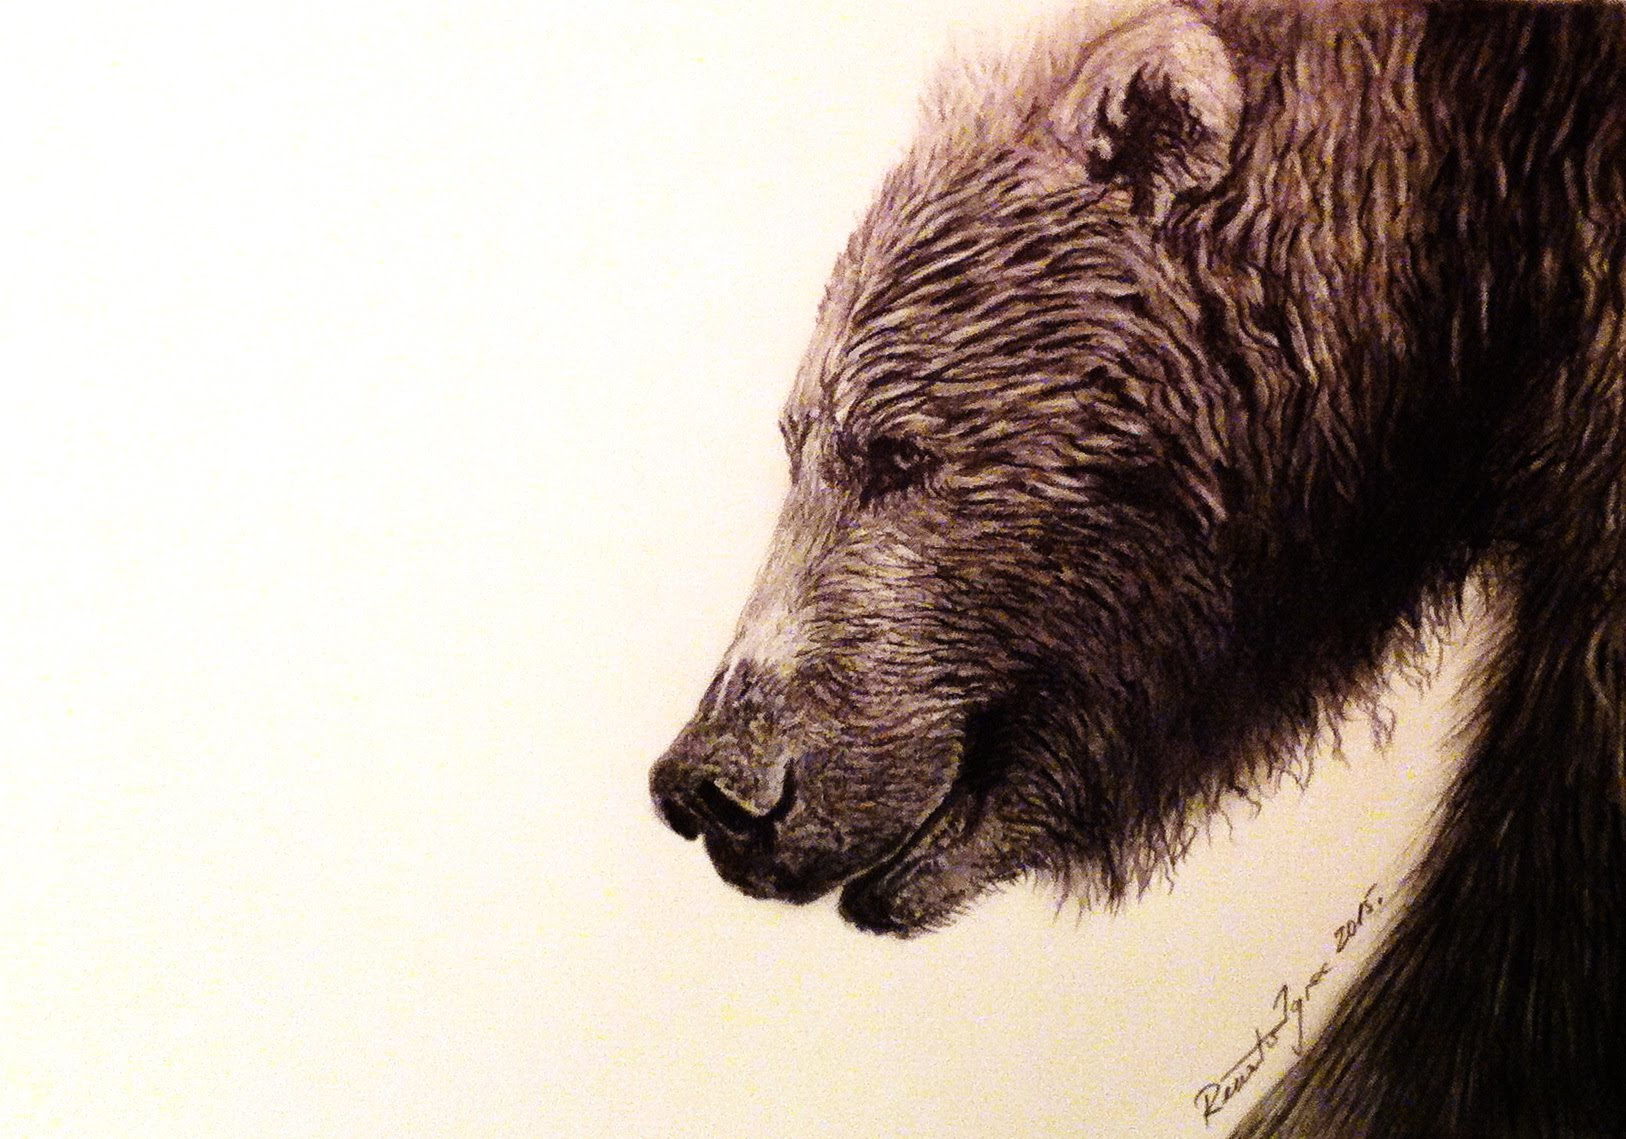 Drawn grizzly bear pencil drawing Bear Hand2 Draw drawing The